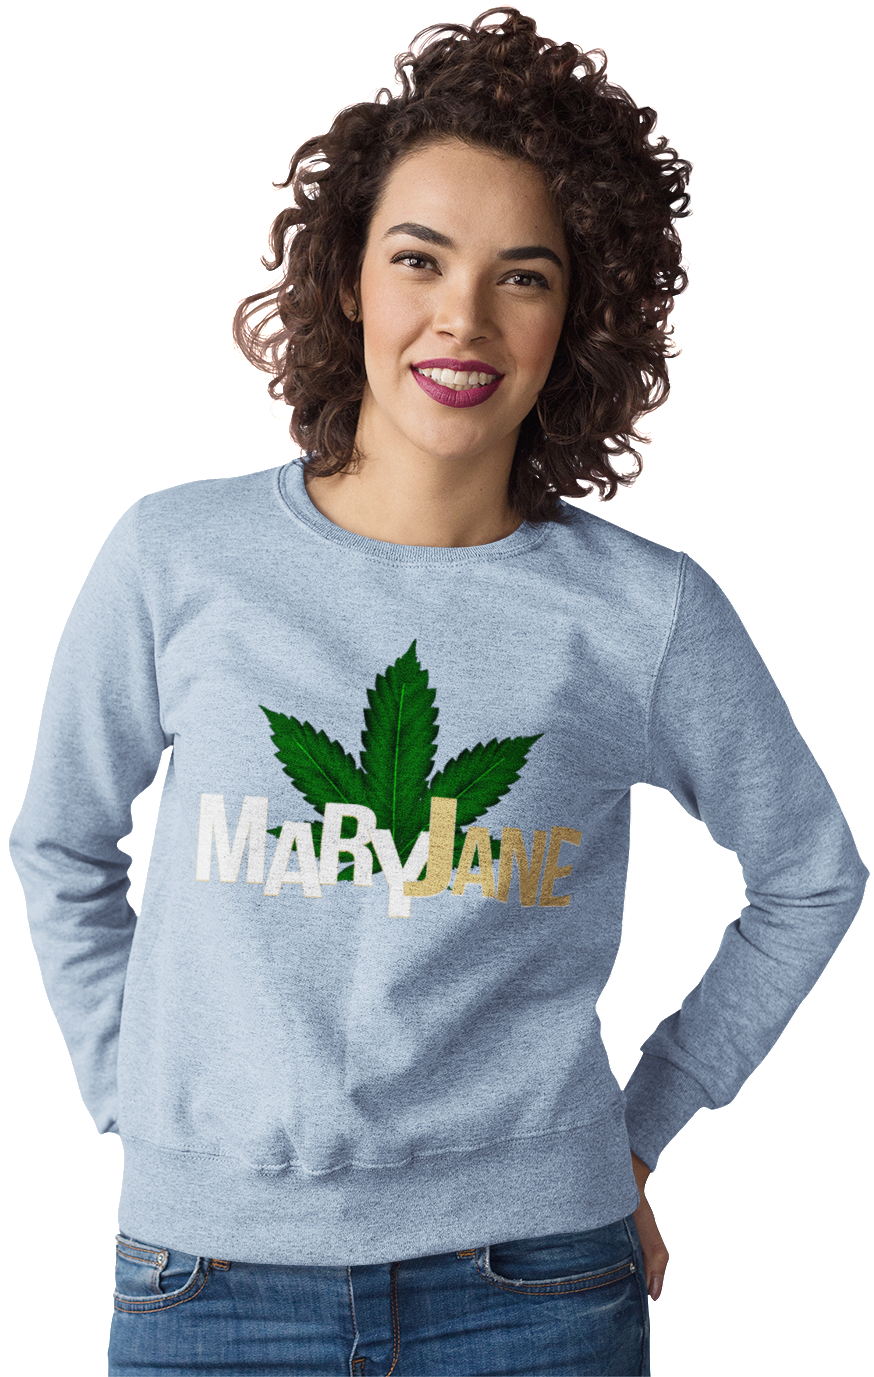 Mary Jane Sweatshirt (W) | Sweatshirt | BFY Apparel | Streetwear & More